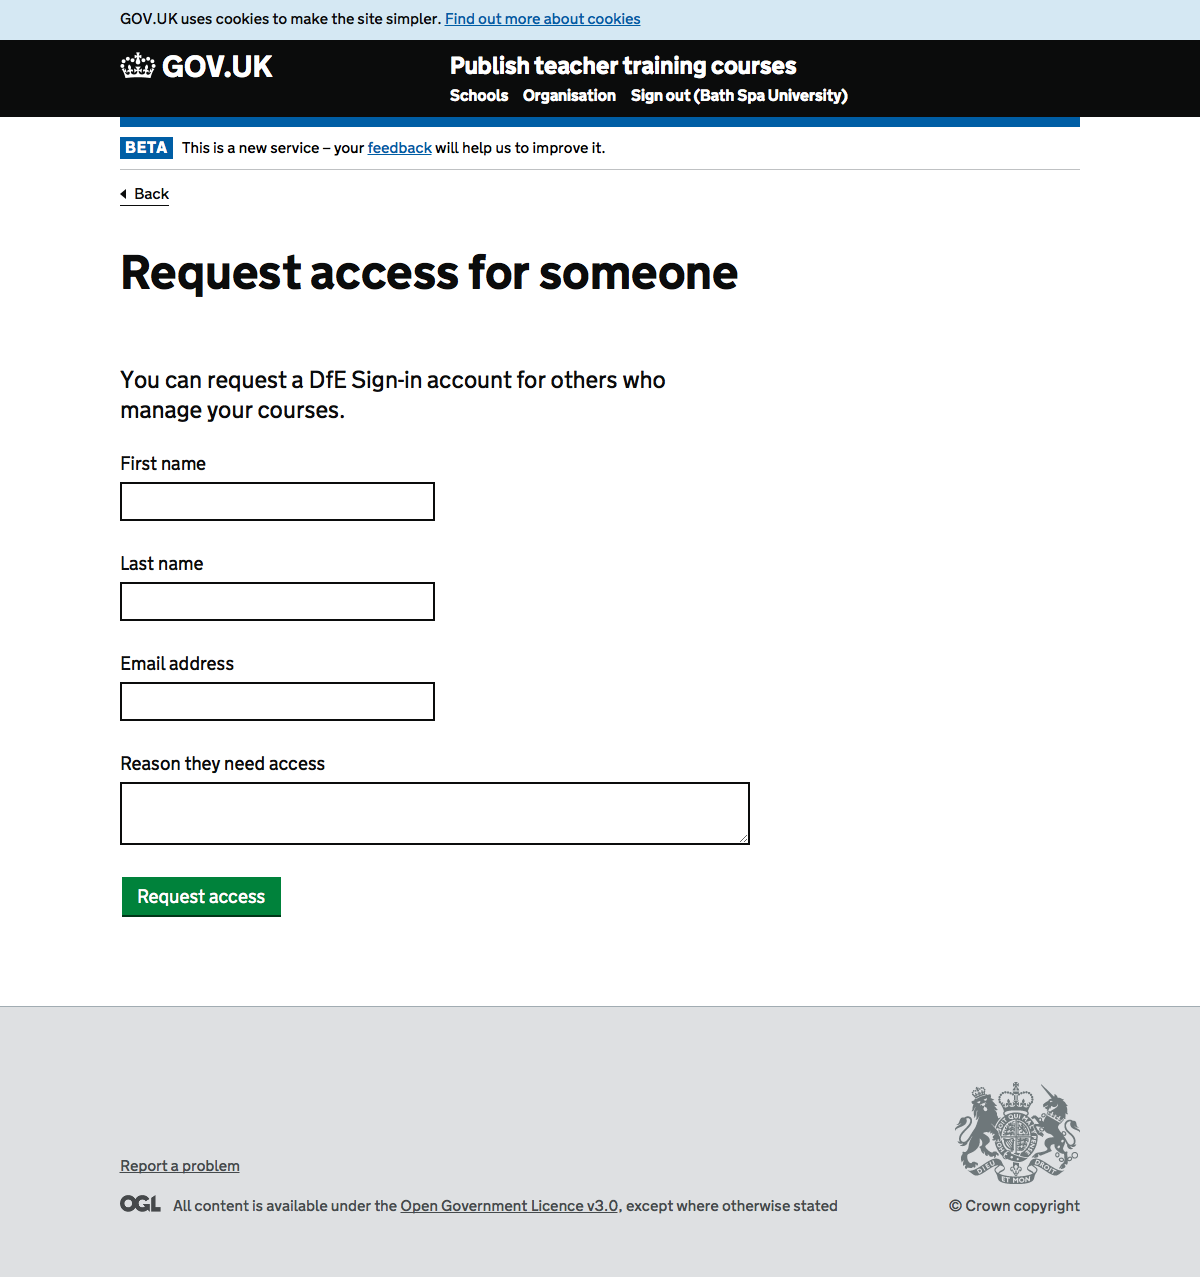 Screenshot of Request access for someone